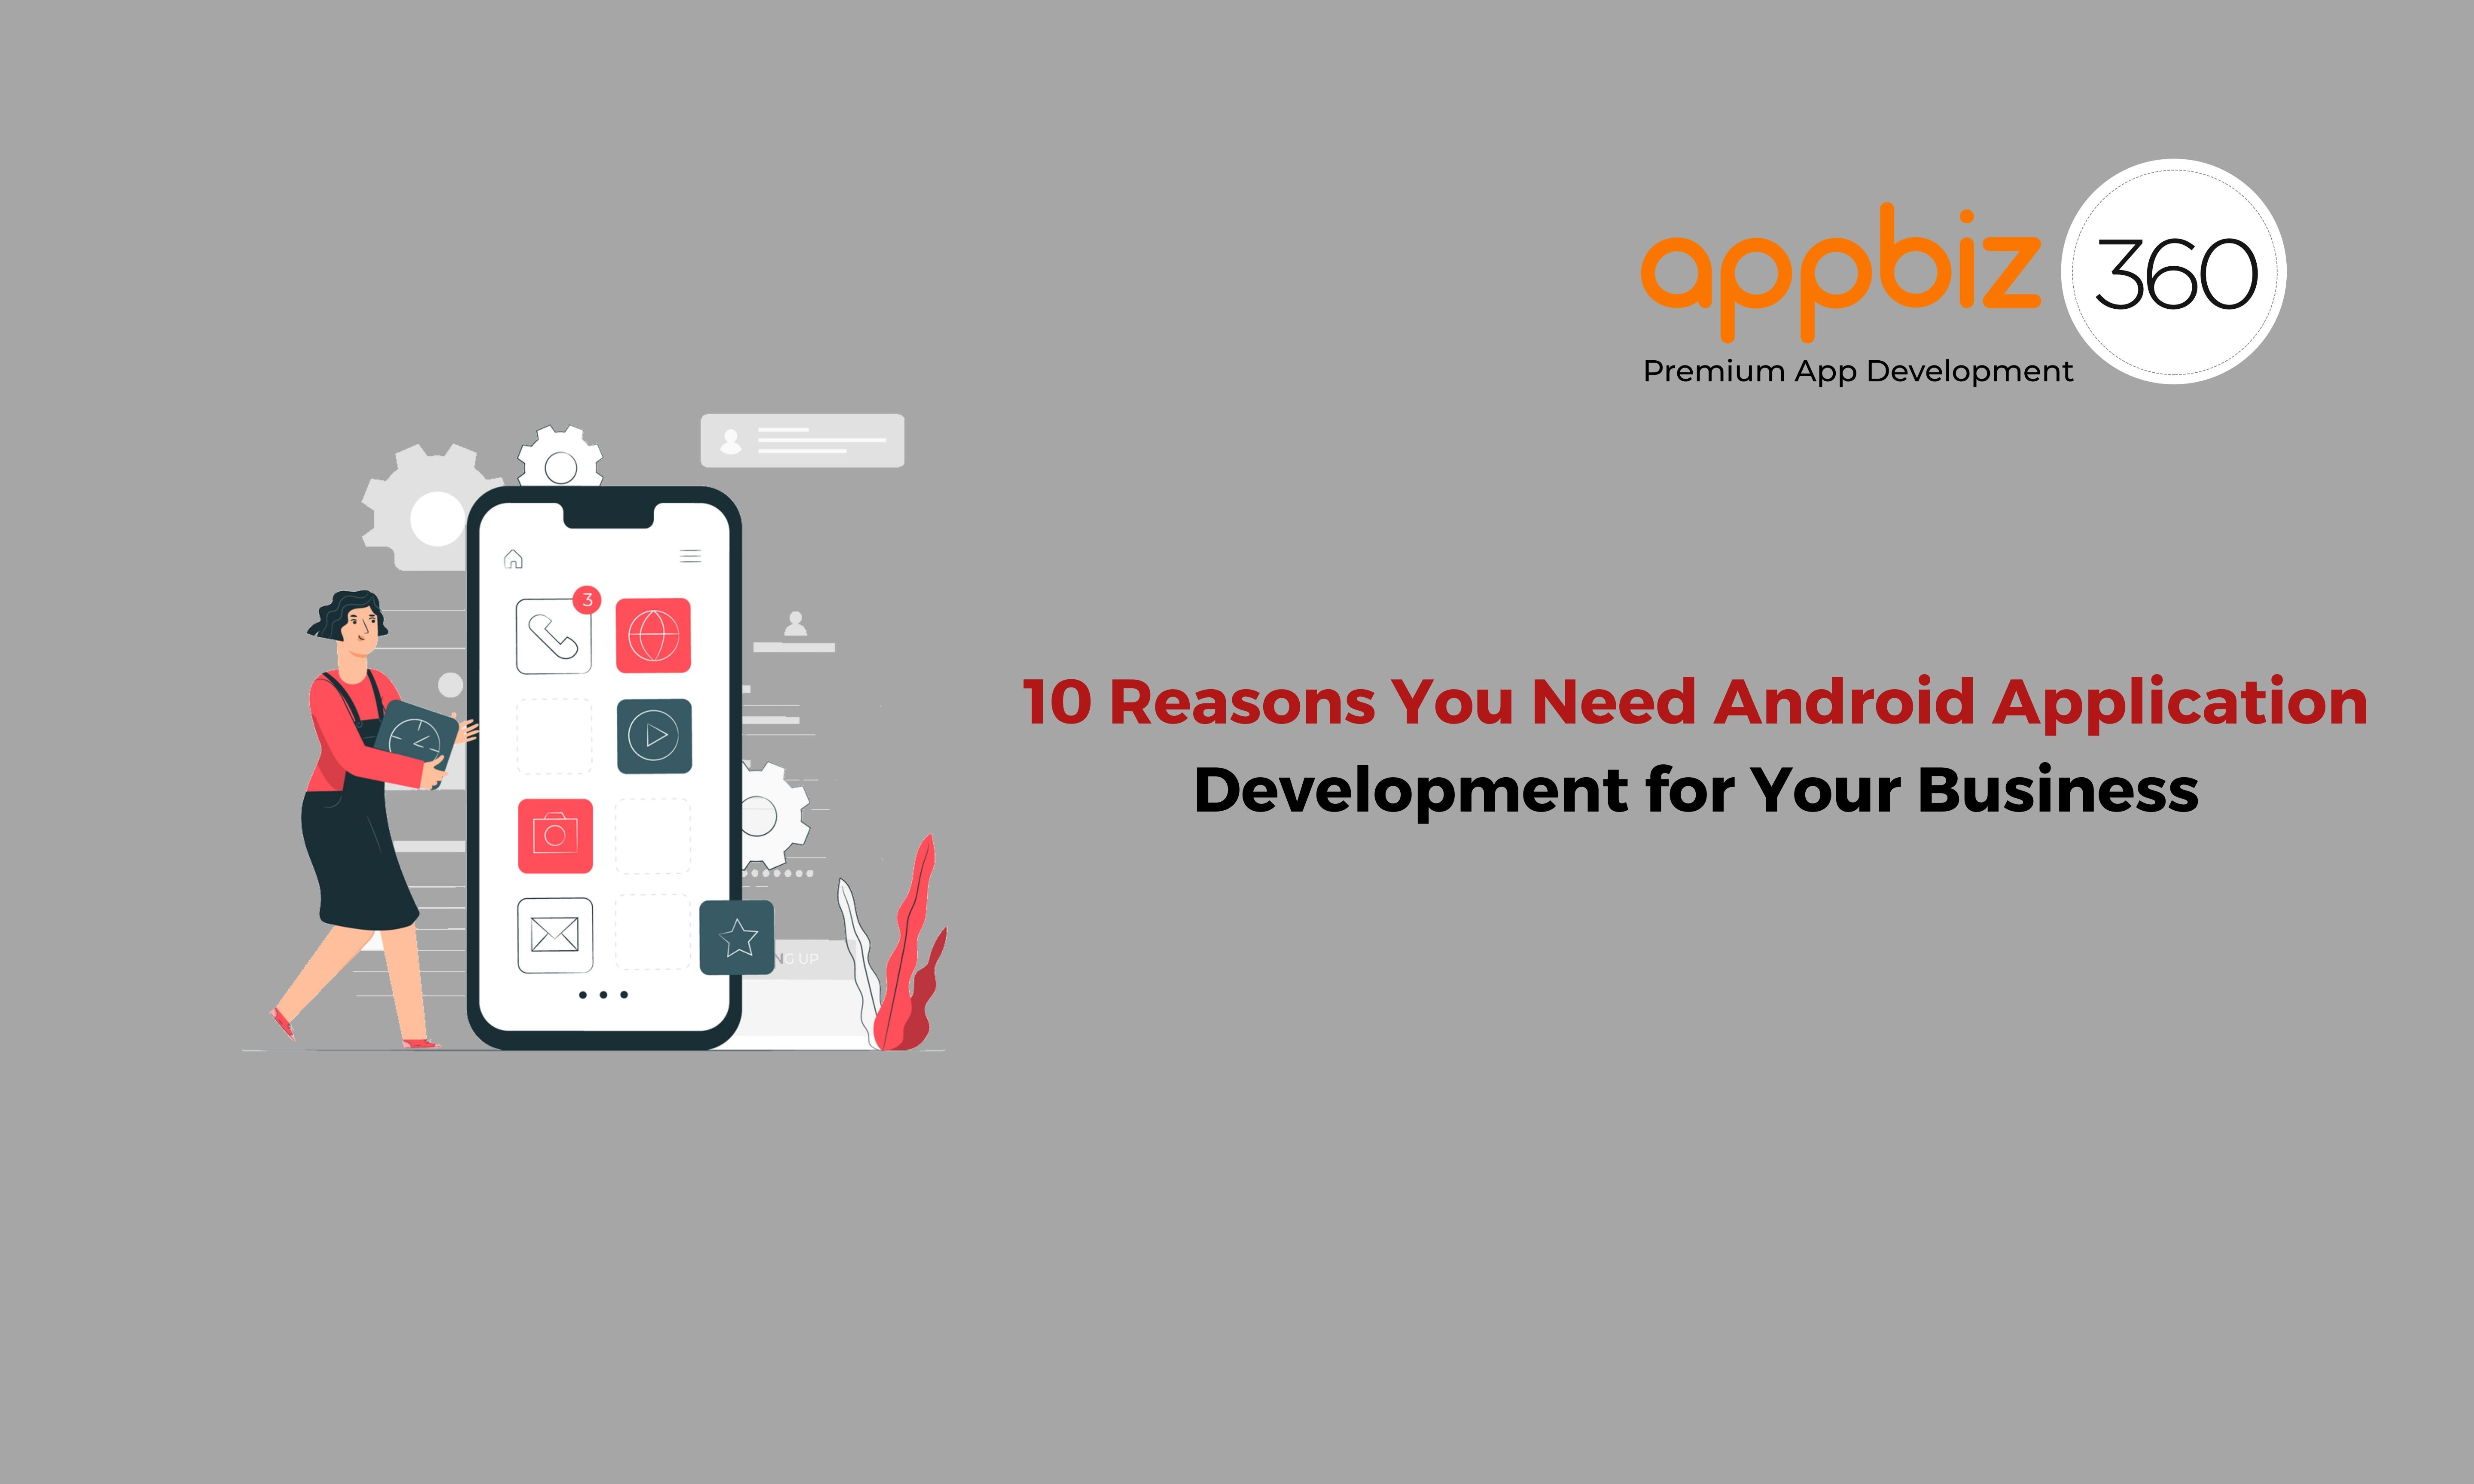 10 Reasons You Need Android Application Development for Your Business